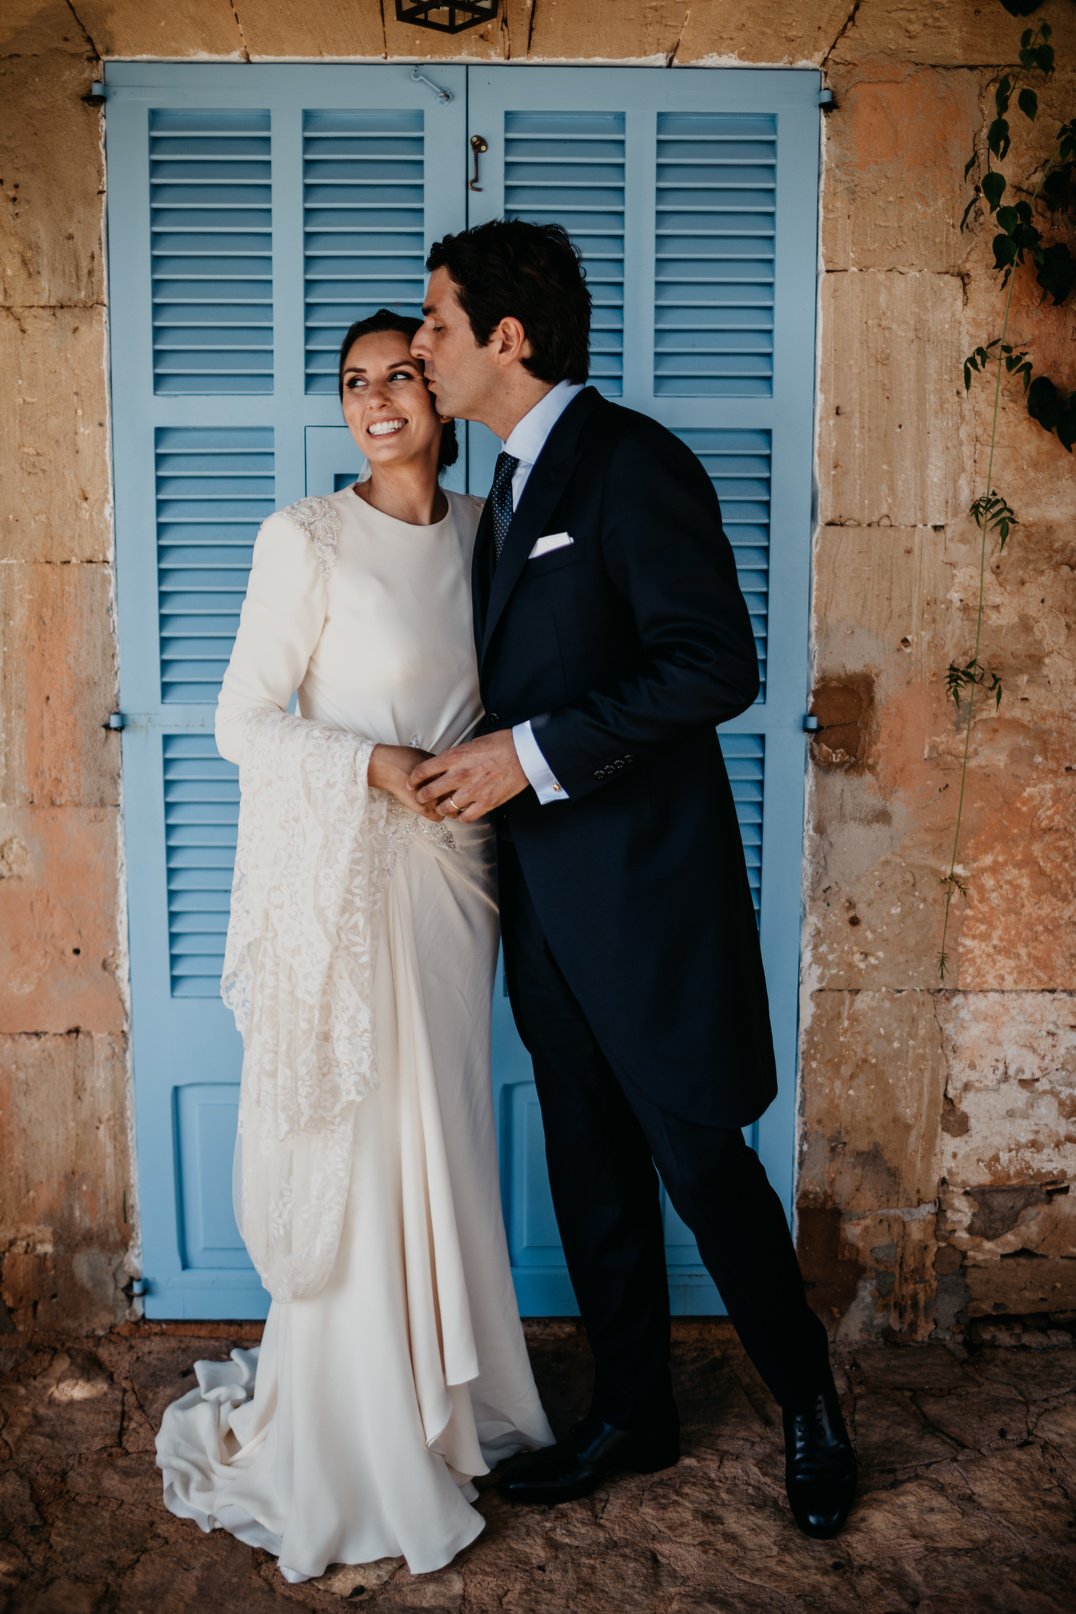 Andrea y Guillermo, bonita boda rústica en Mallorca / Andrea and Guillermo, beautiful rustic wedding in Mallorca